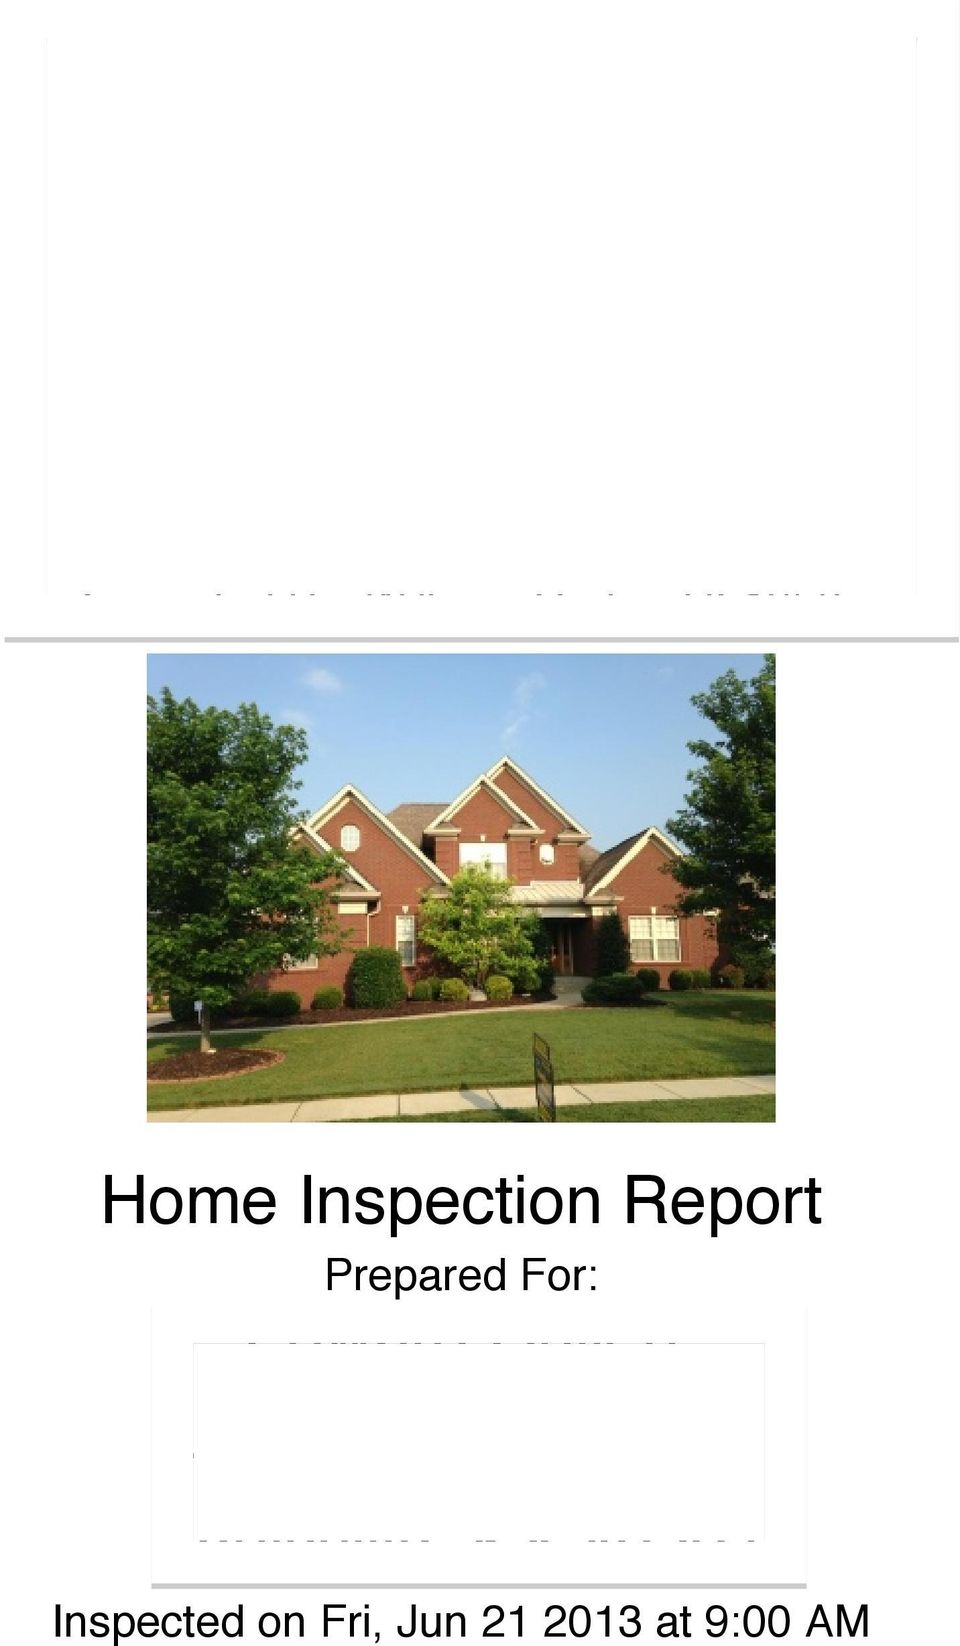 com Inspected By: William Carter, HI-1956 Home Inspection Report